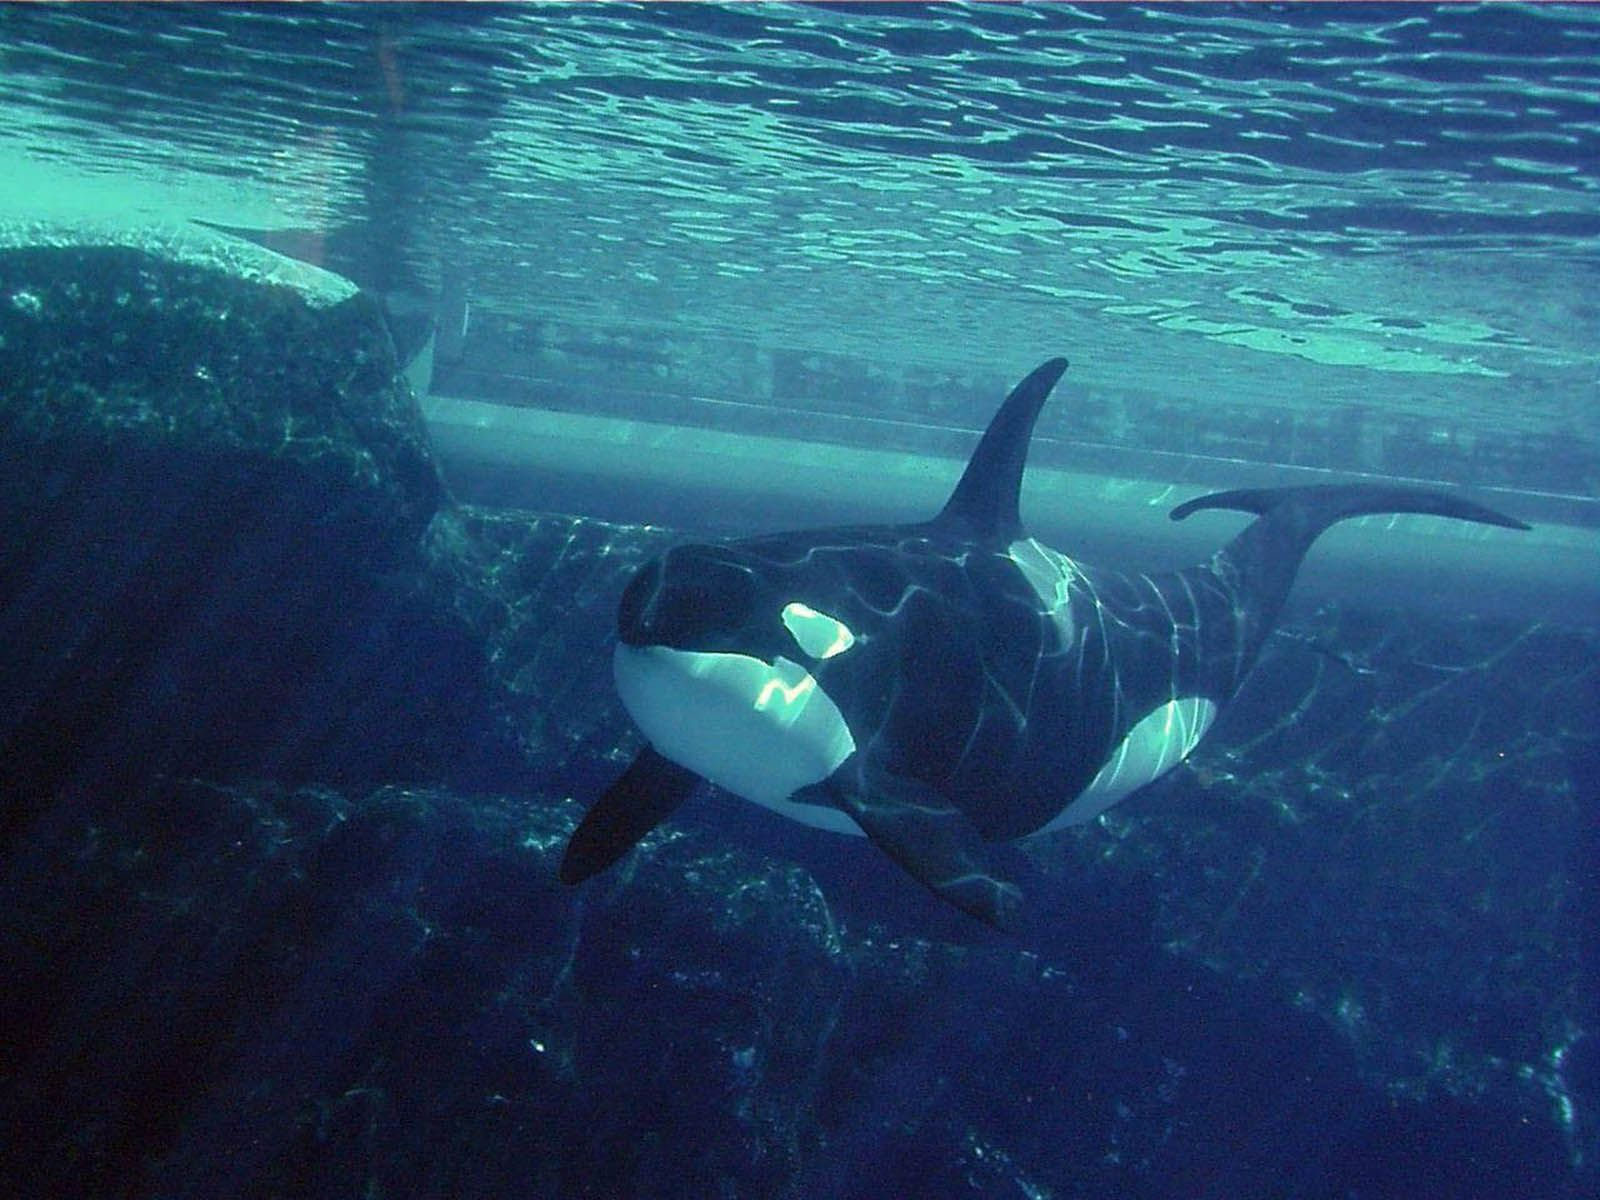 Wallpapers orca wallpapers killer whale pinterest orcas and wallpapers orca wallpapers altavistaventures Images